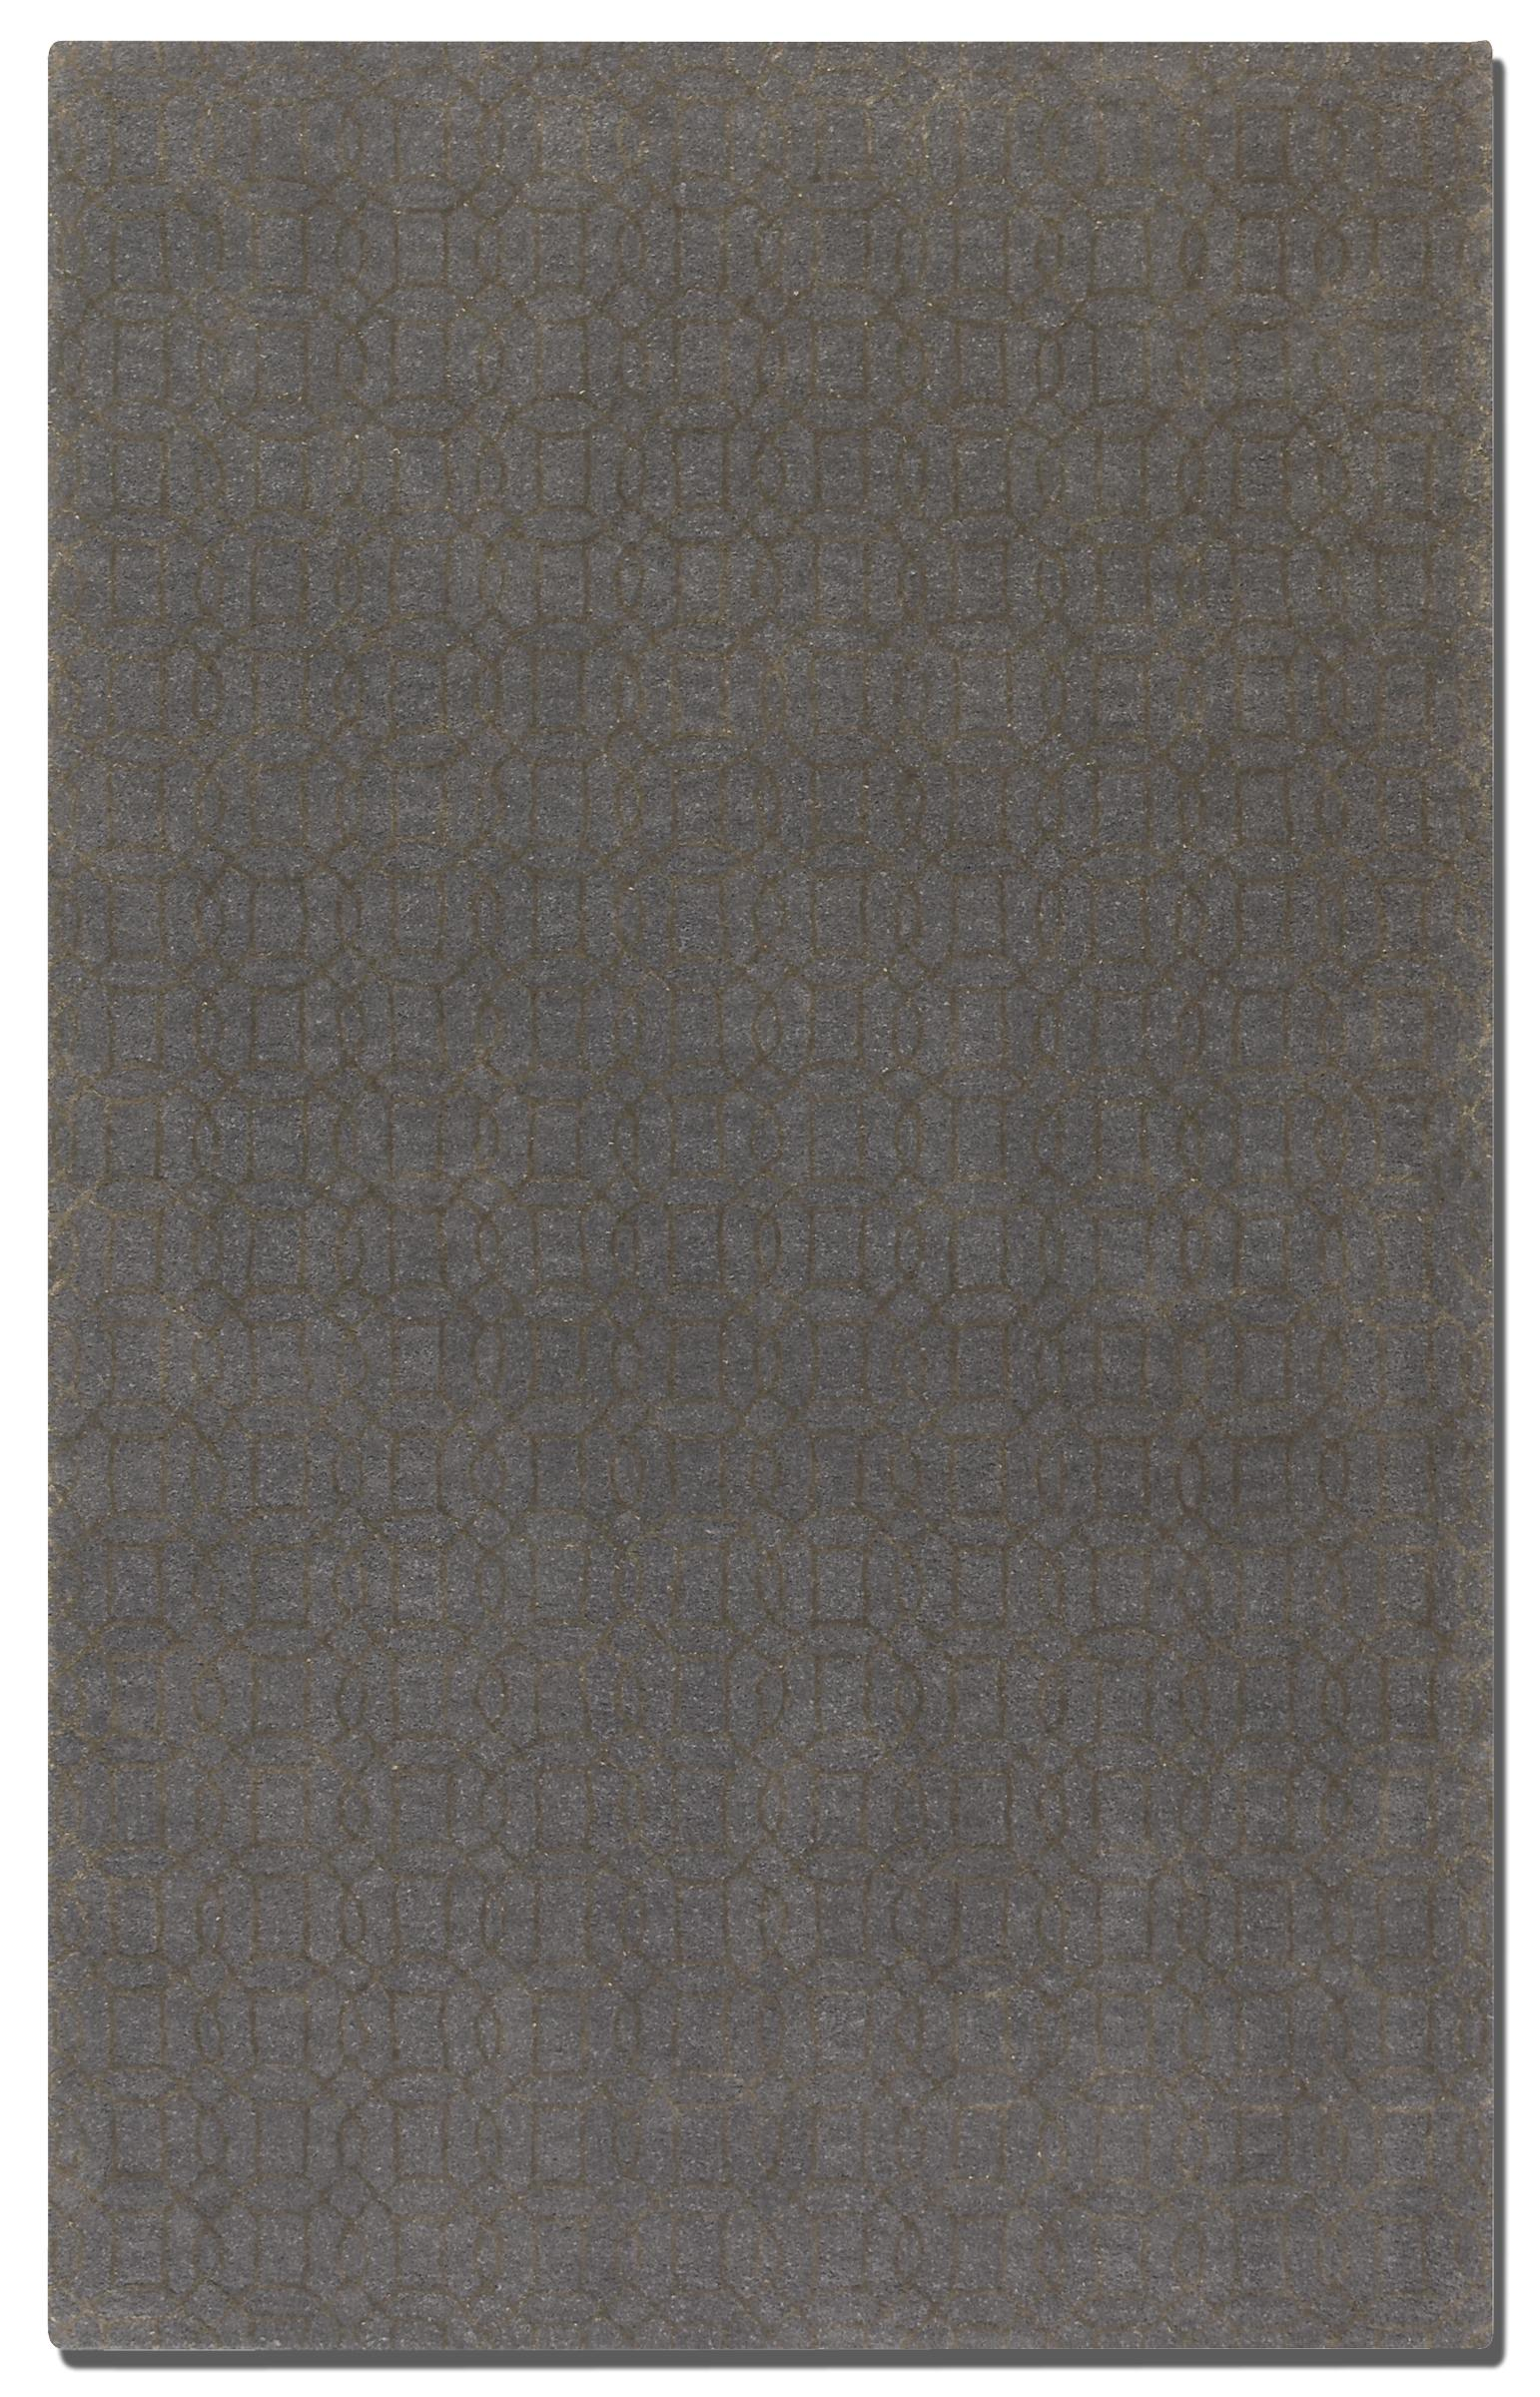 Uttermost Rugs Cambridge 5 X 8  - Item Number: 73028-5